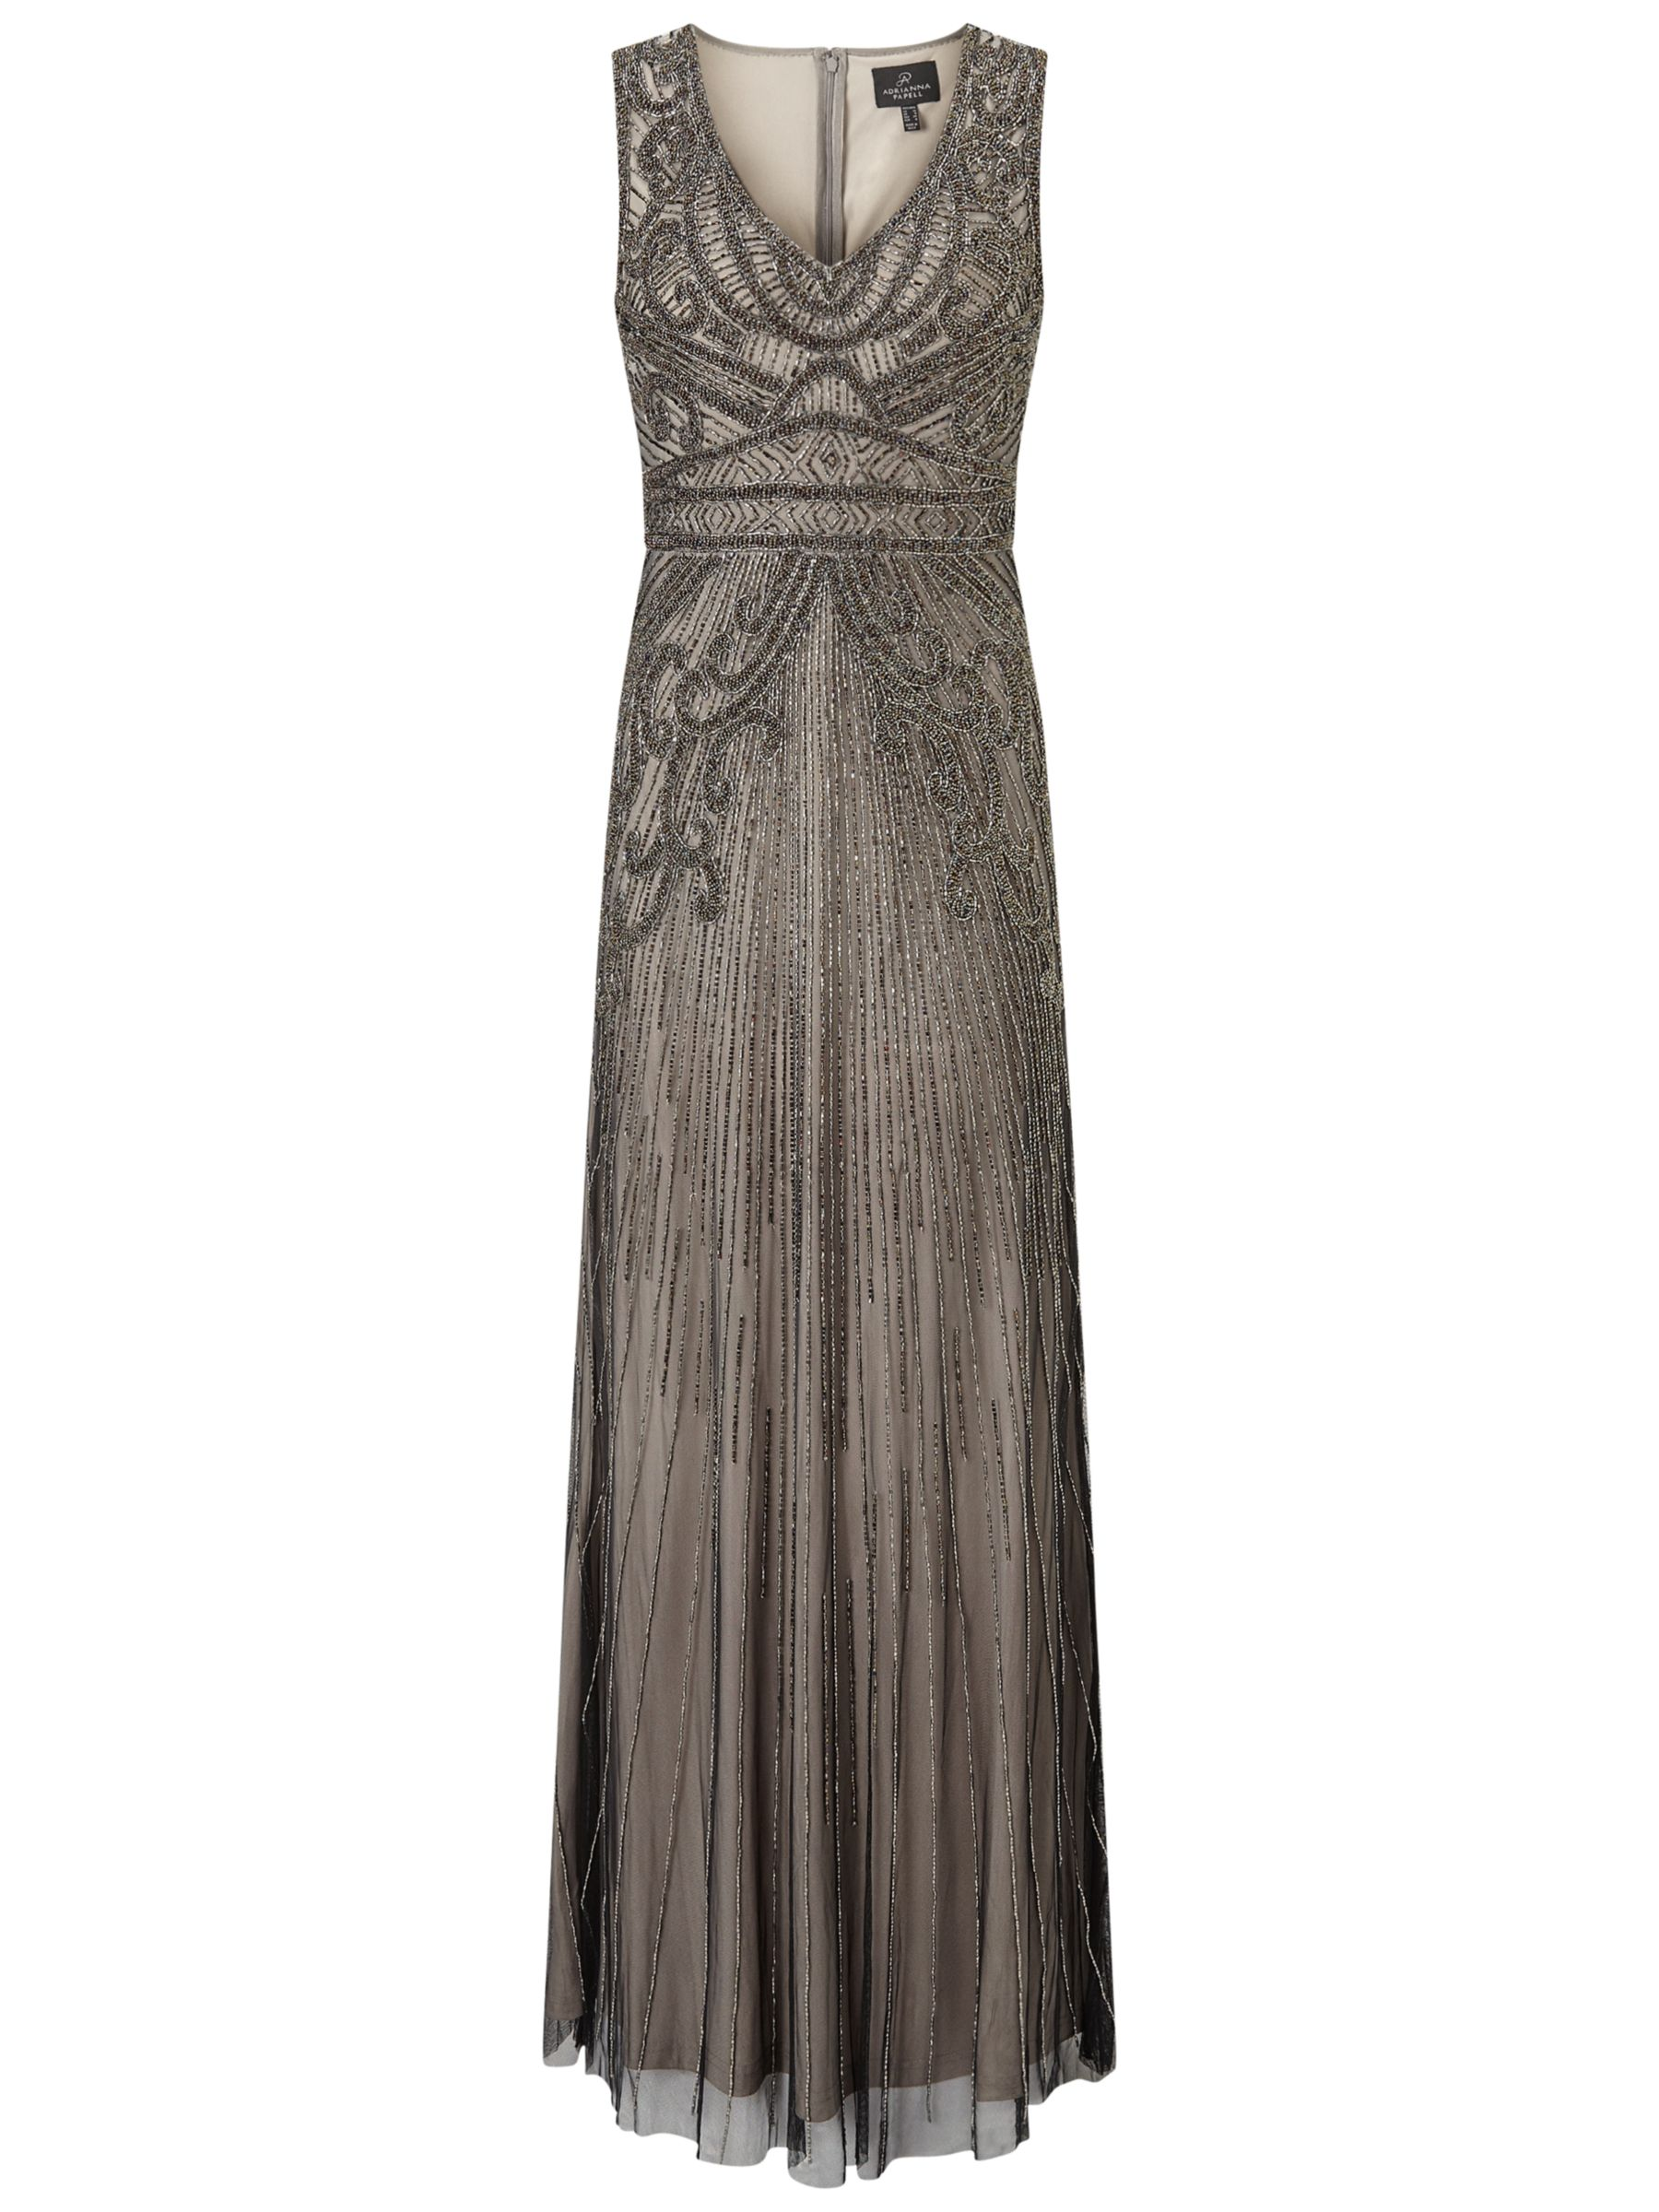 Adrianna Papell Adrianna Papell Fully Beaded Sleeveless Gown, Platinum